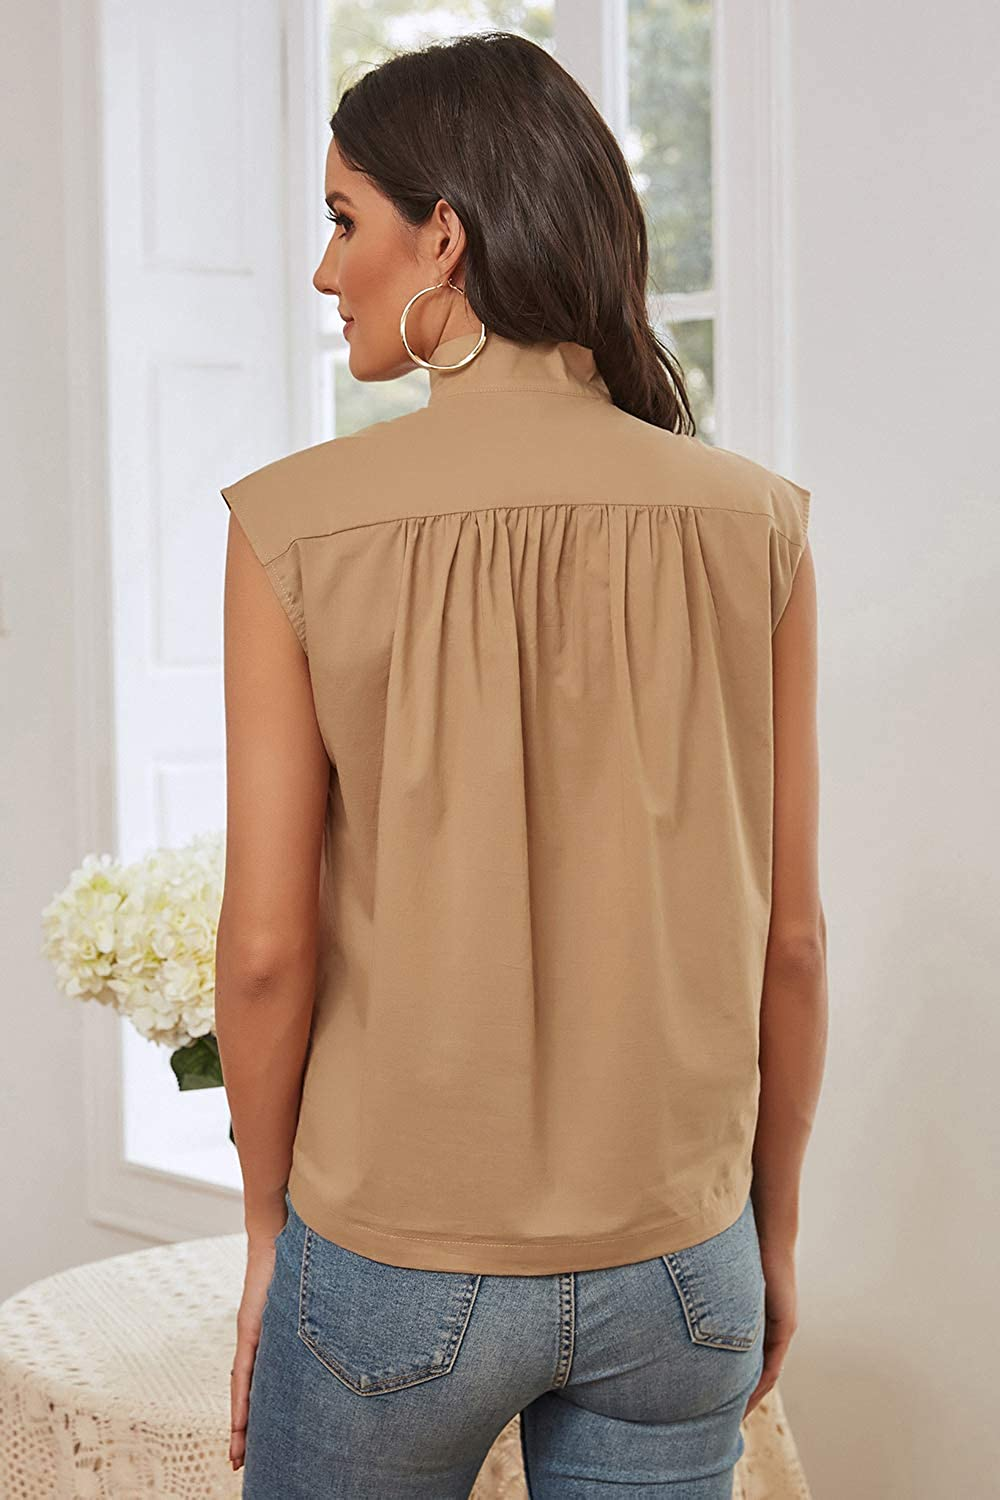 A Grain of Wheat Women's Casual Cap Sleeve Button Down Tank Top Stand Collar Pleated Shirt Blouse